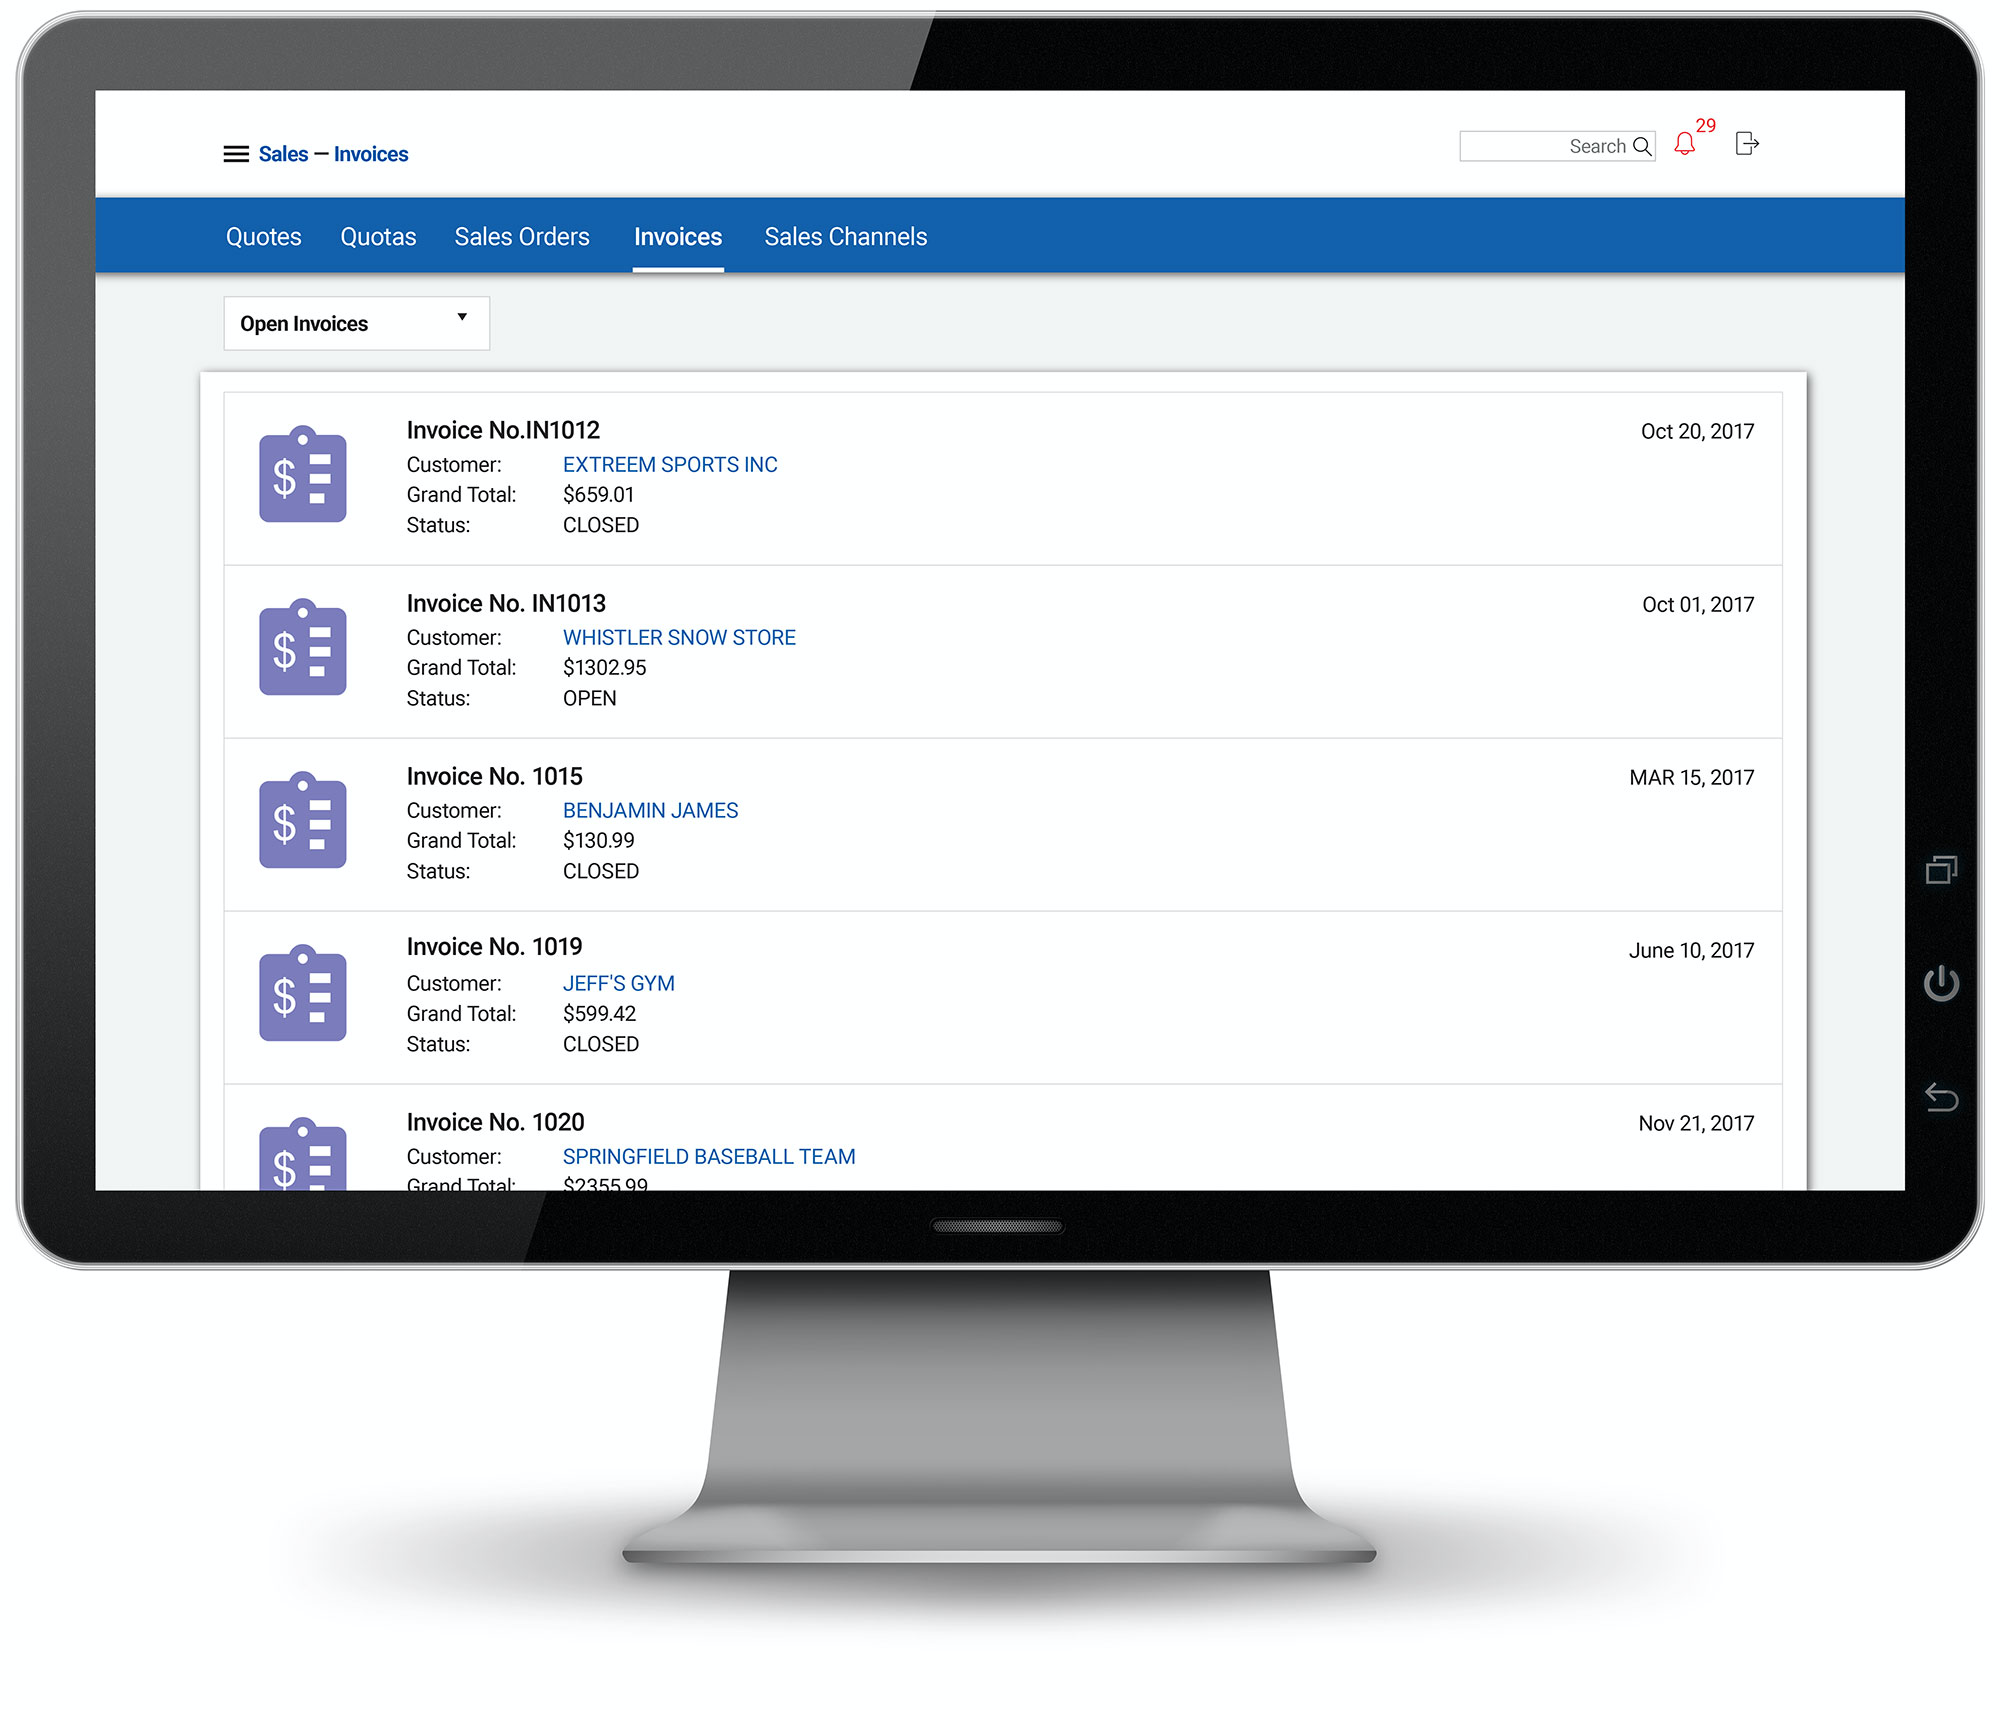 See invoices, bills and quotes, and view purchase orders